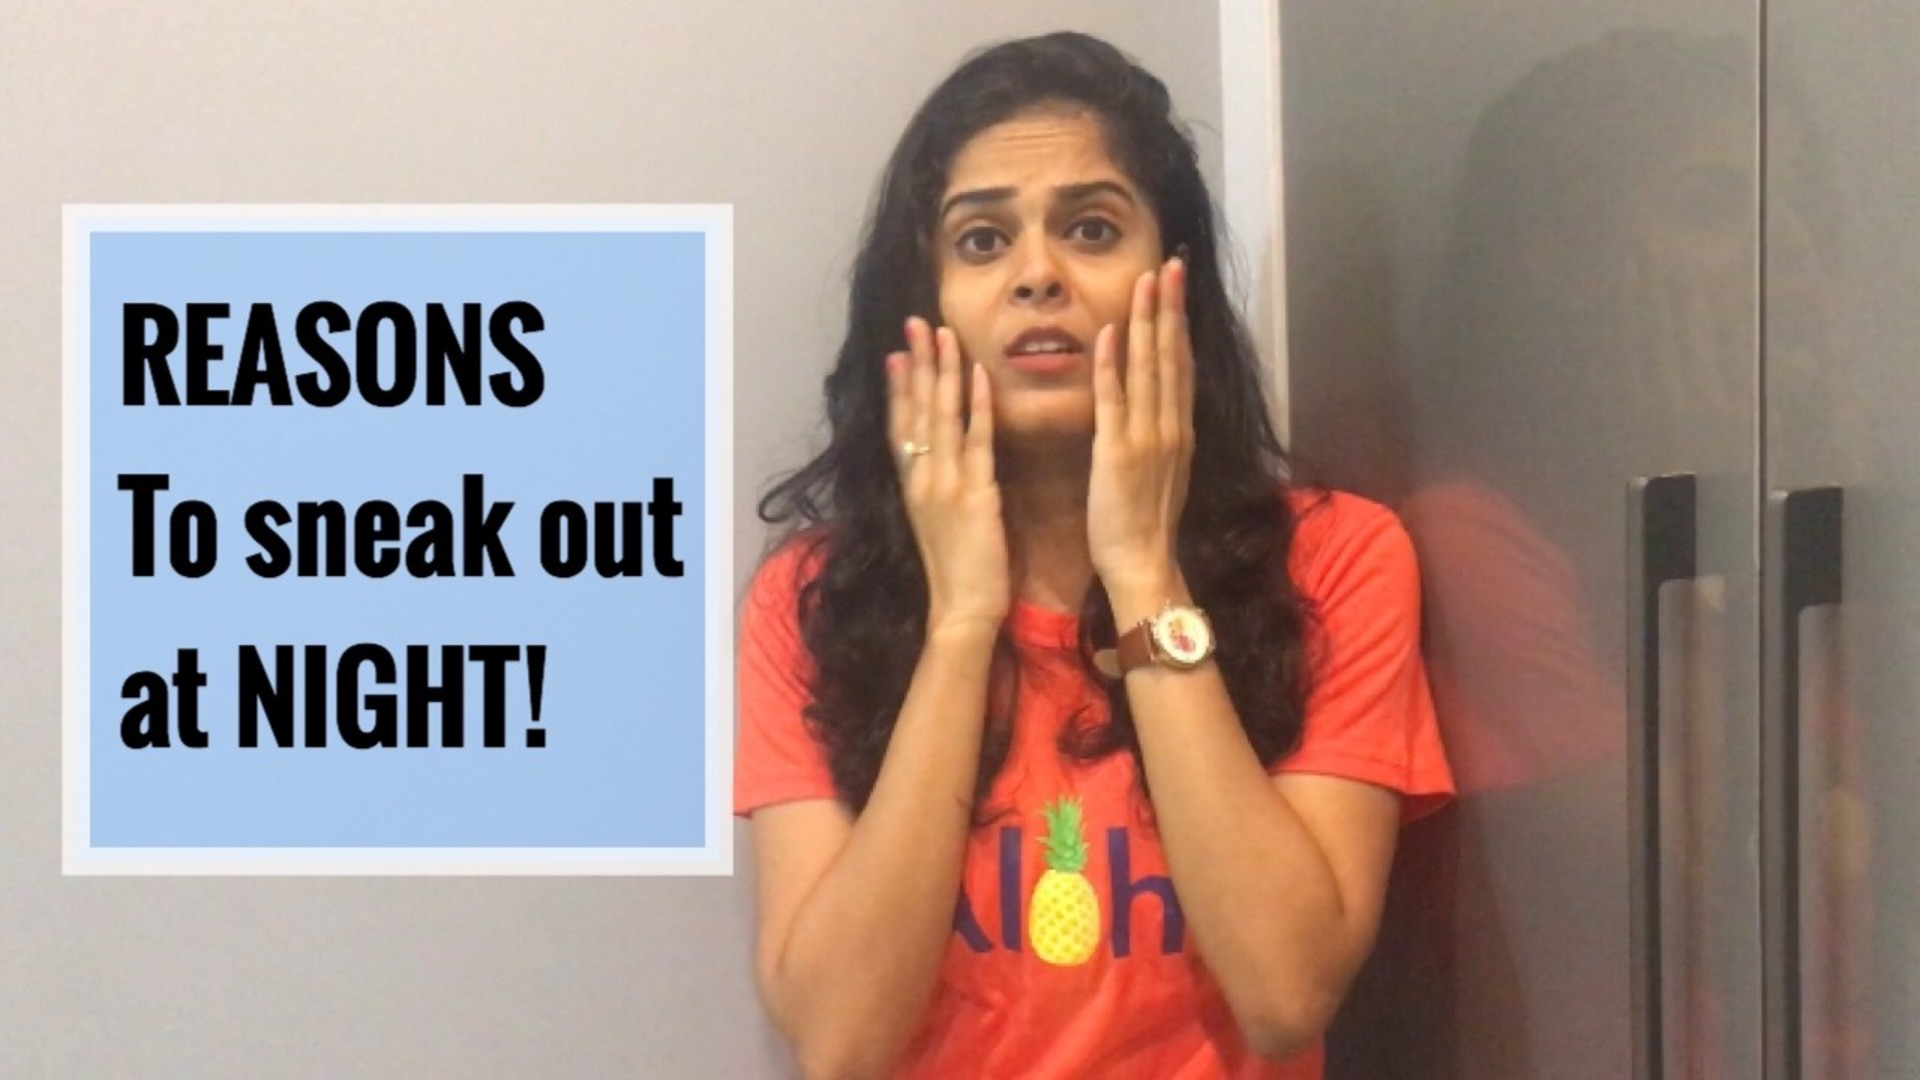 Excuses we make to sneak out for a night out! image